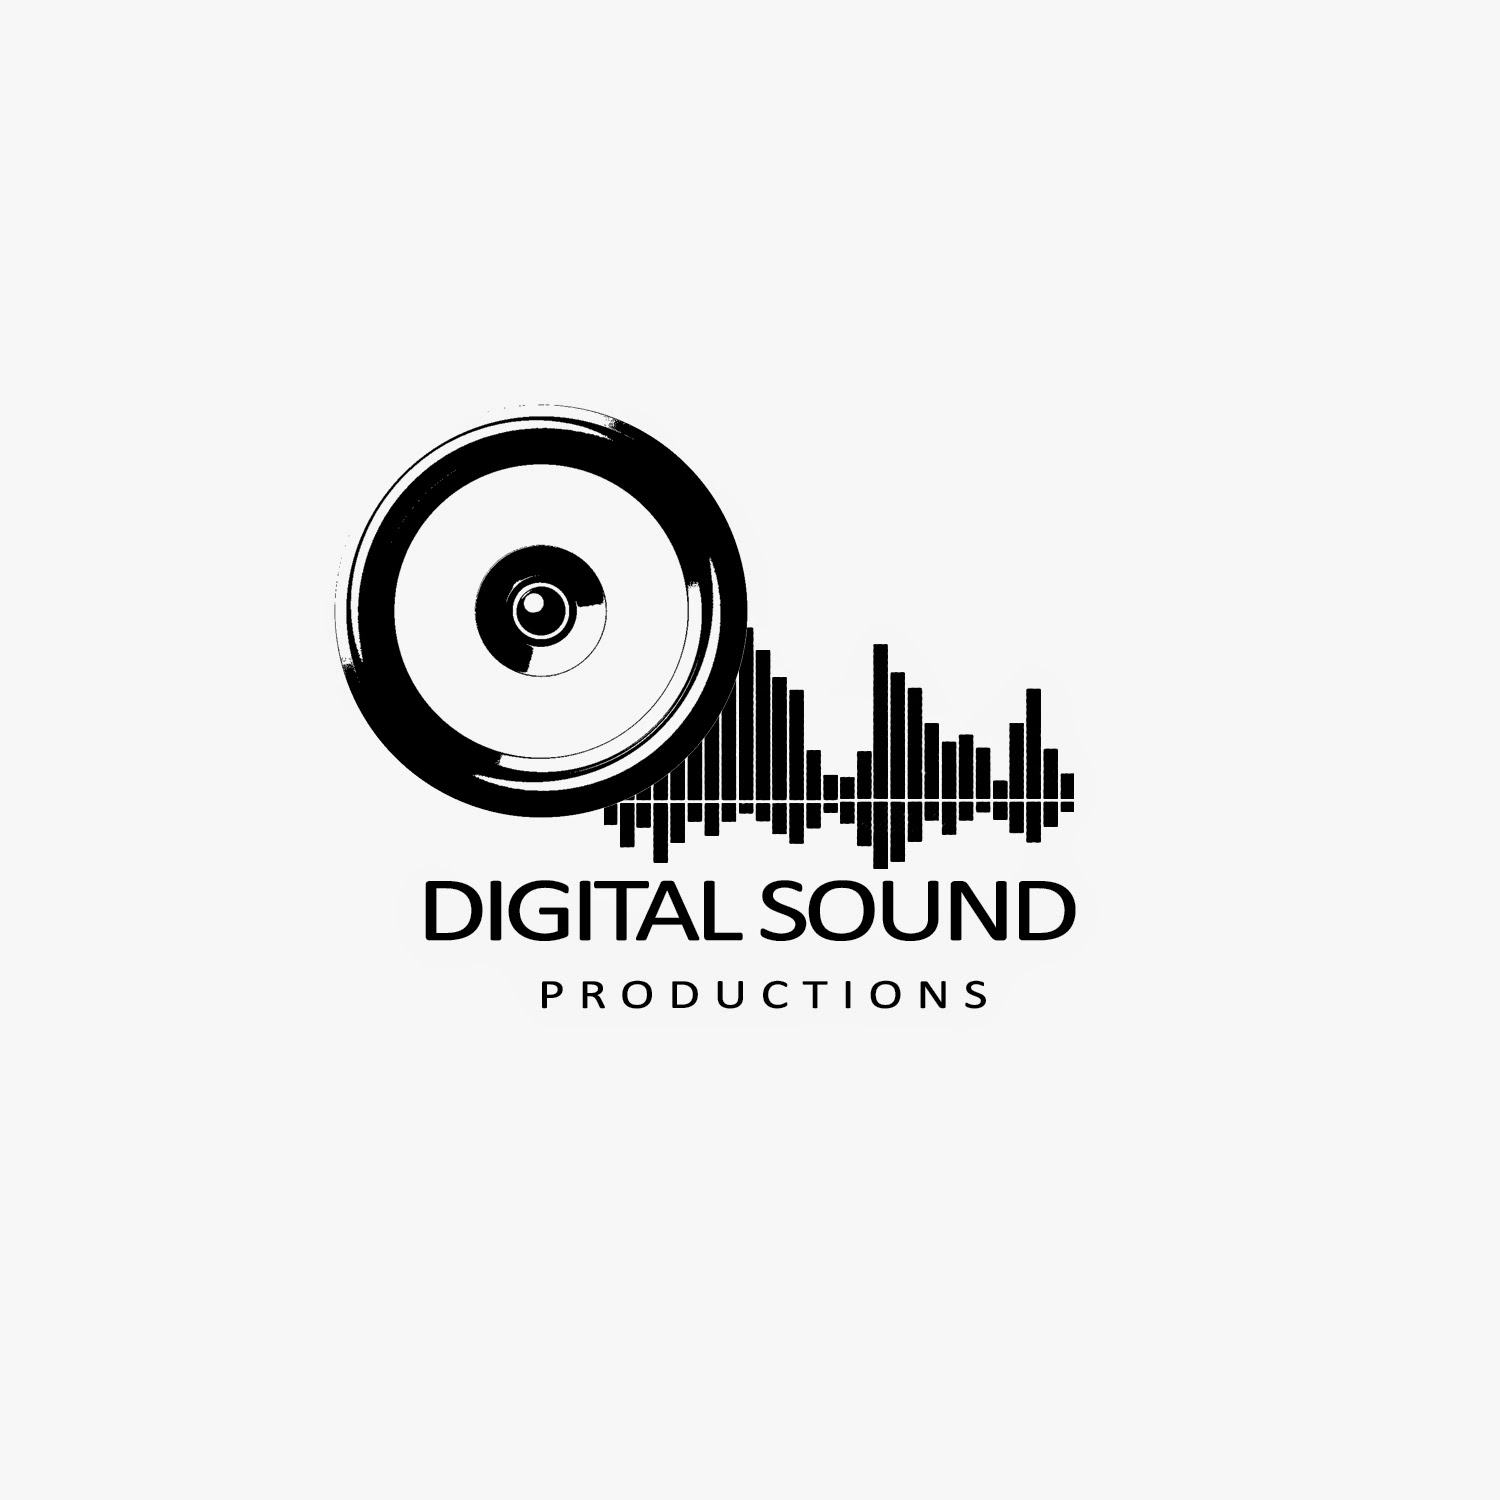 Sound Design  ZapSplat  Download free sound effects